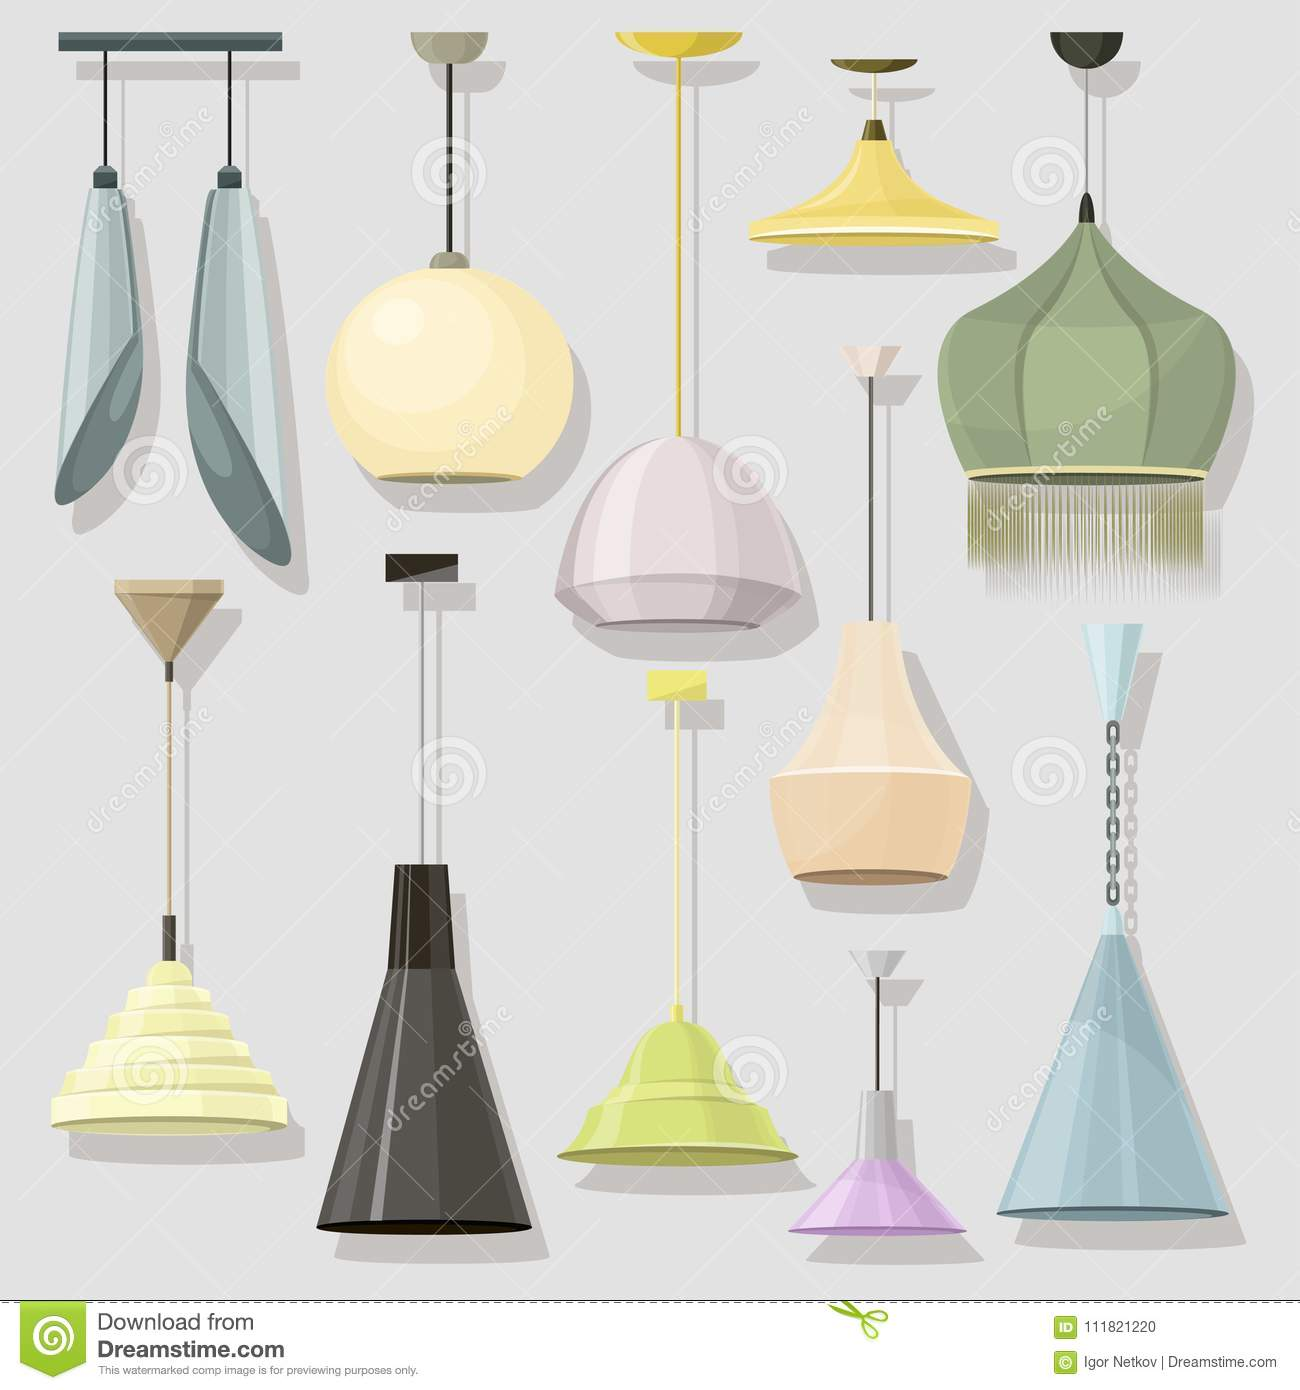 Lamps Sign Set For Interior Electricity Floor Lamp And Table Concept Home Decoration Object In Flat Style